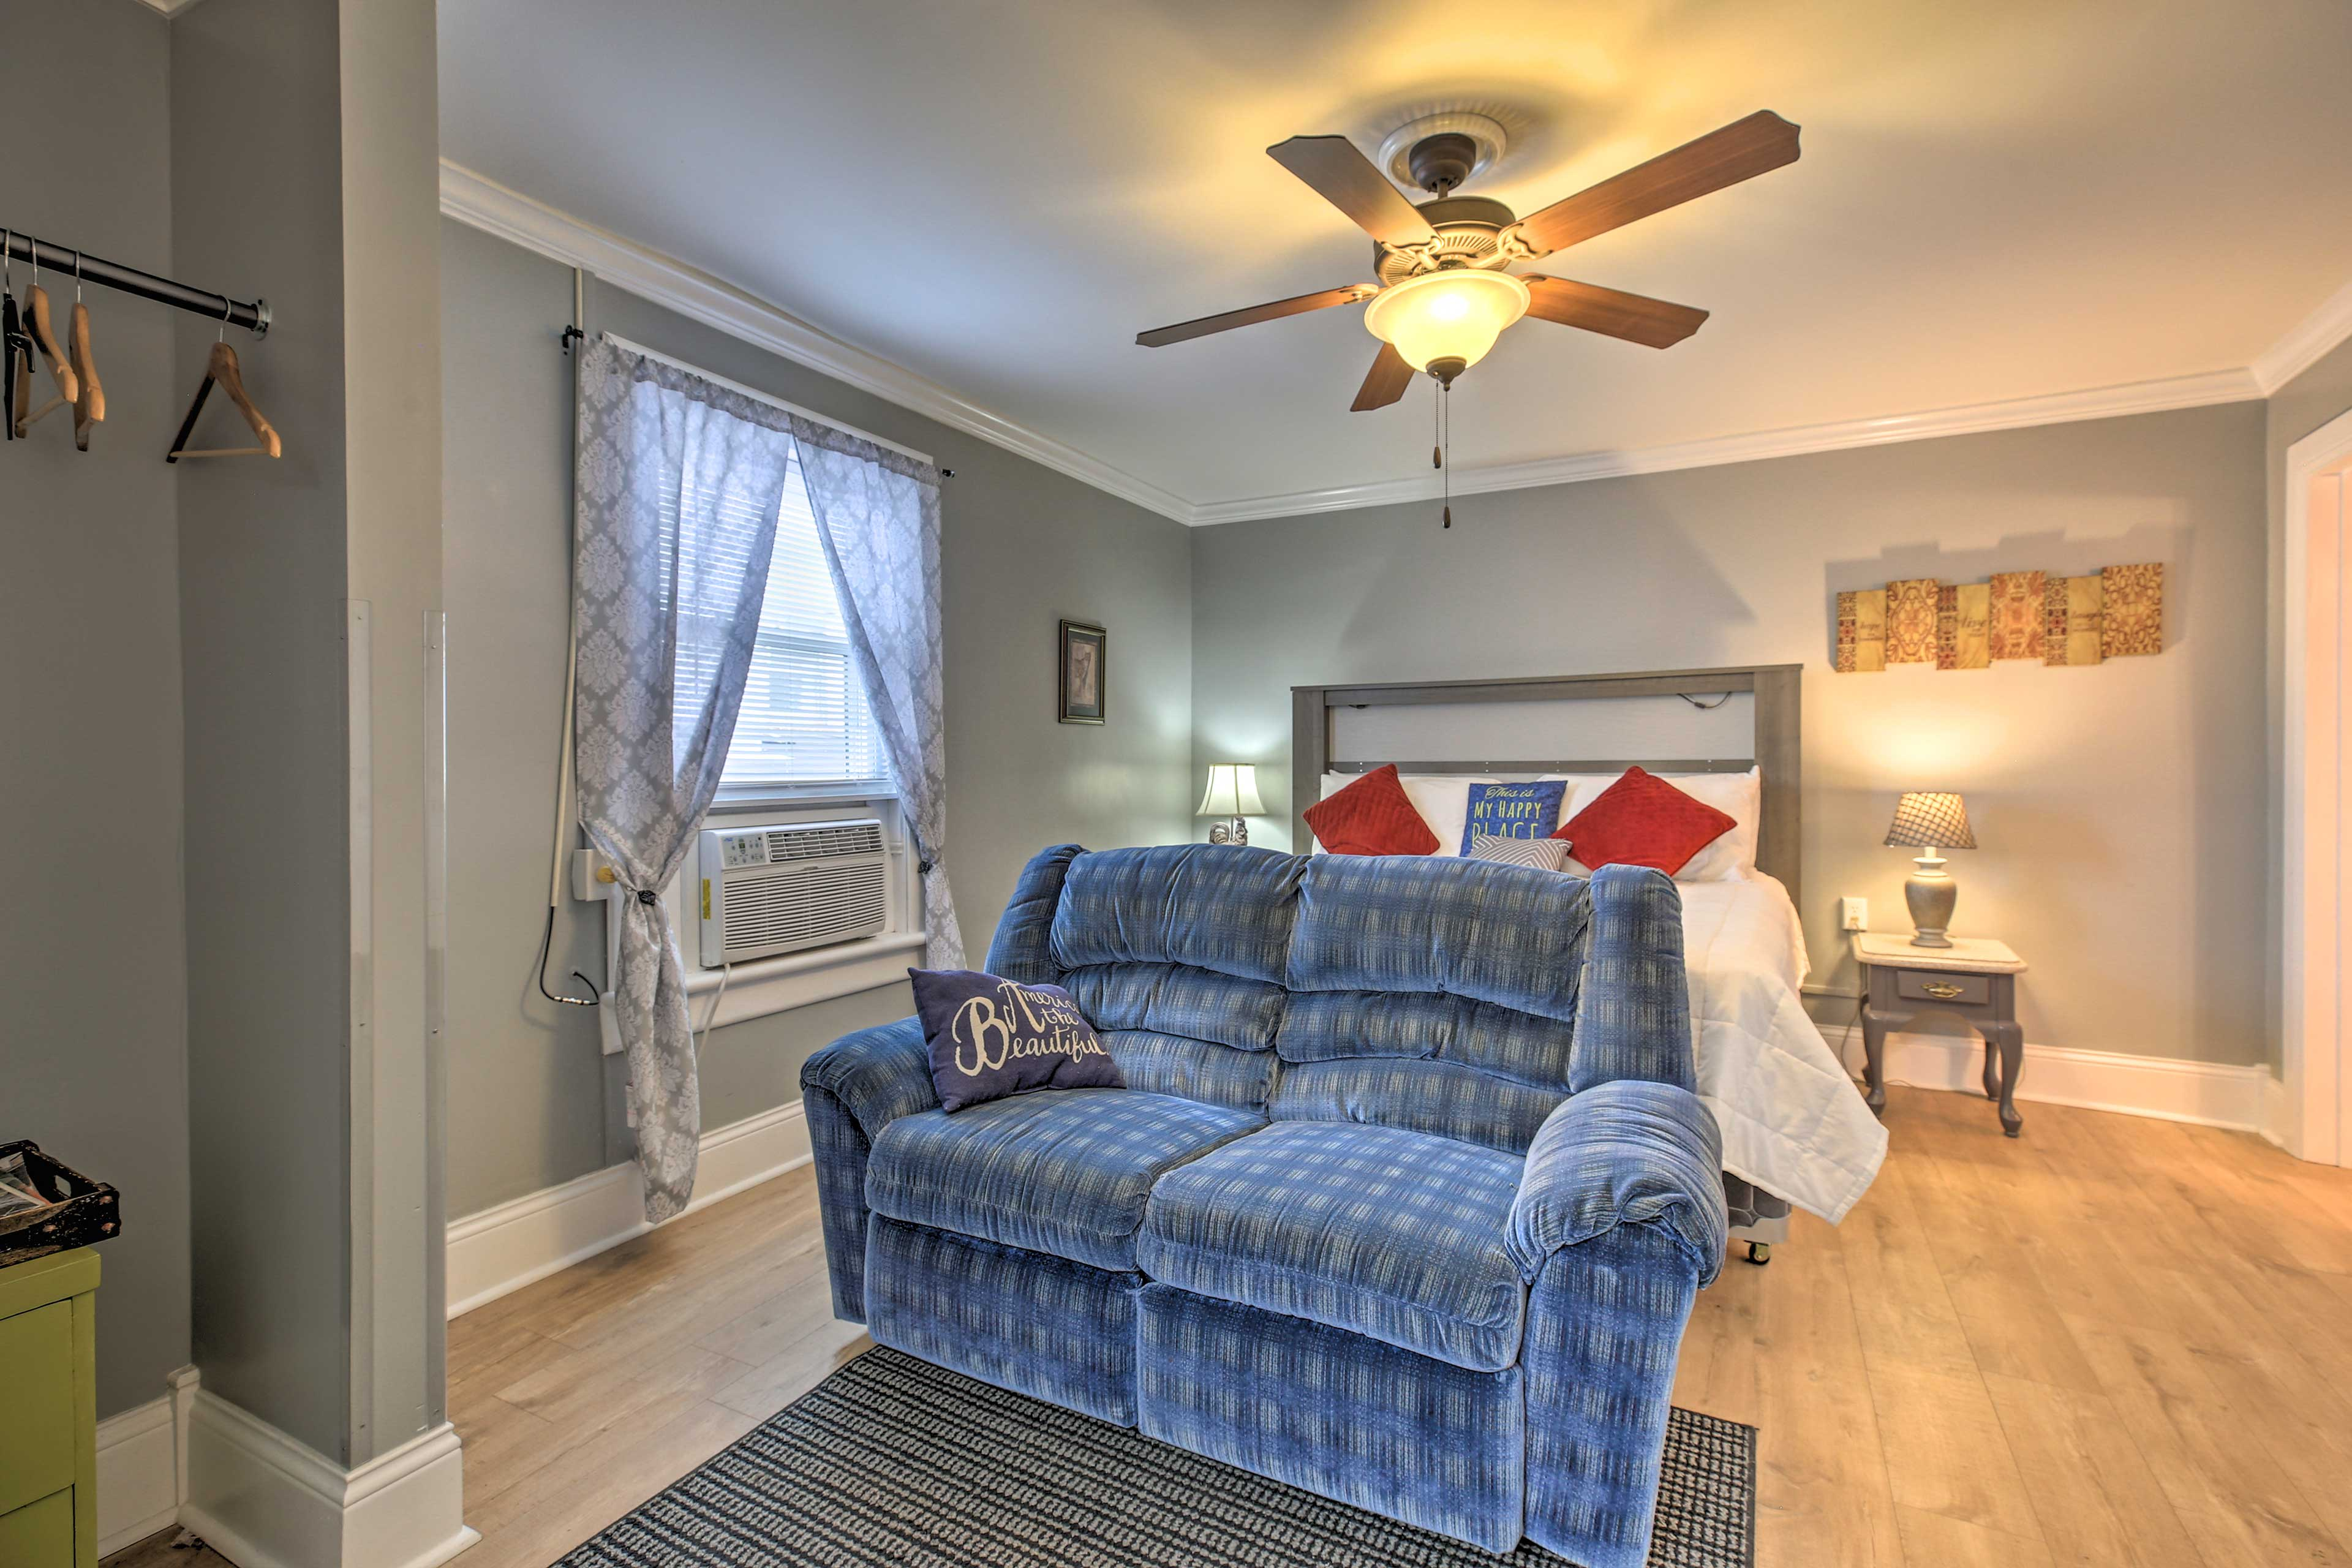 Ceiling fans are sure to keep you cool on warm nights!